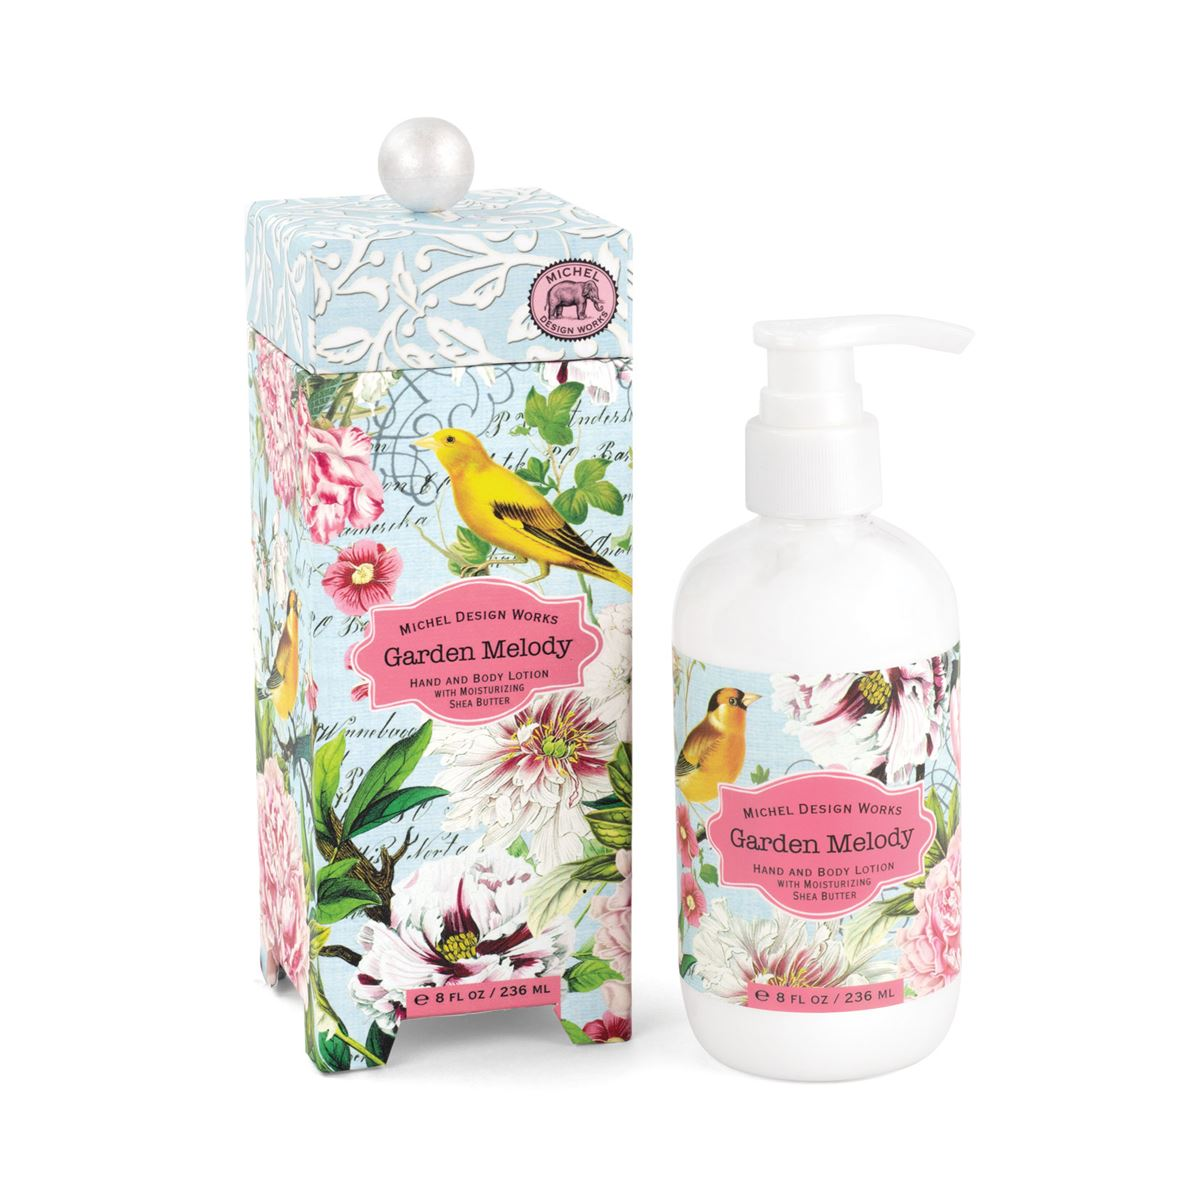 Garden Melody - Hand And Body Lotion With Shea Butter